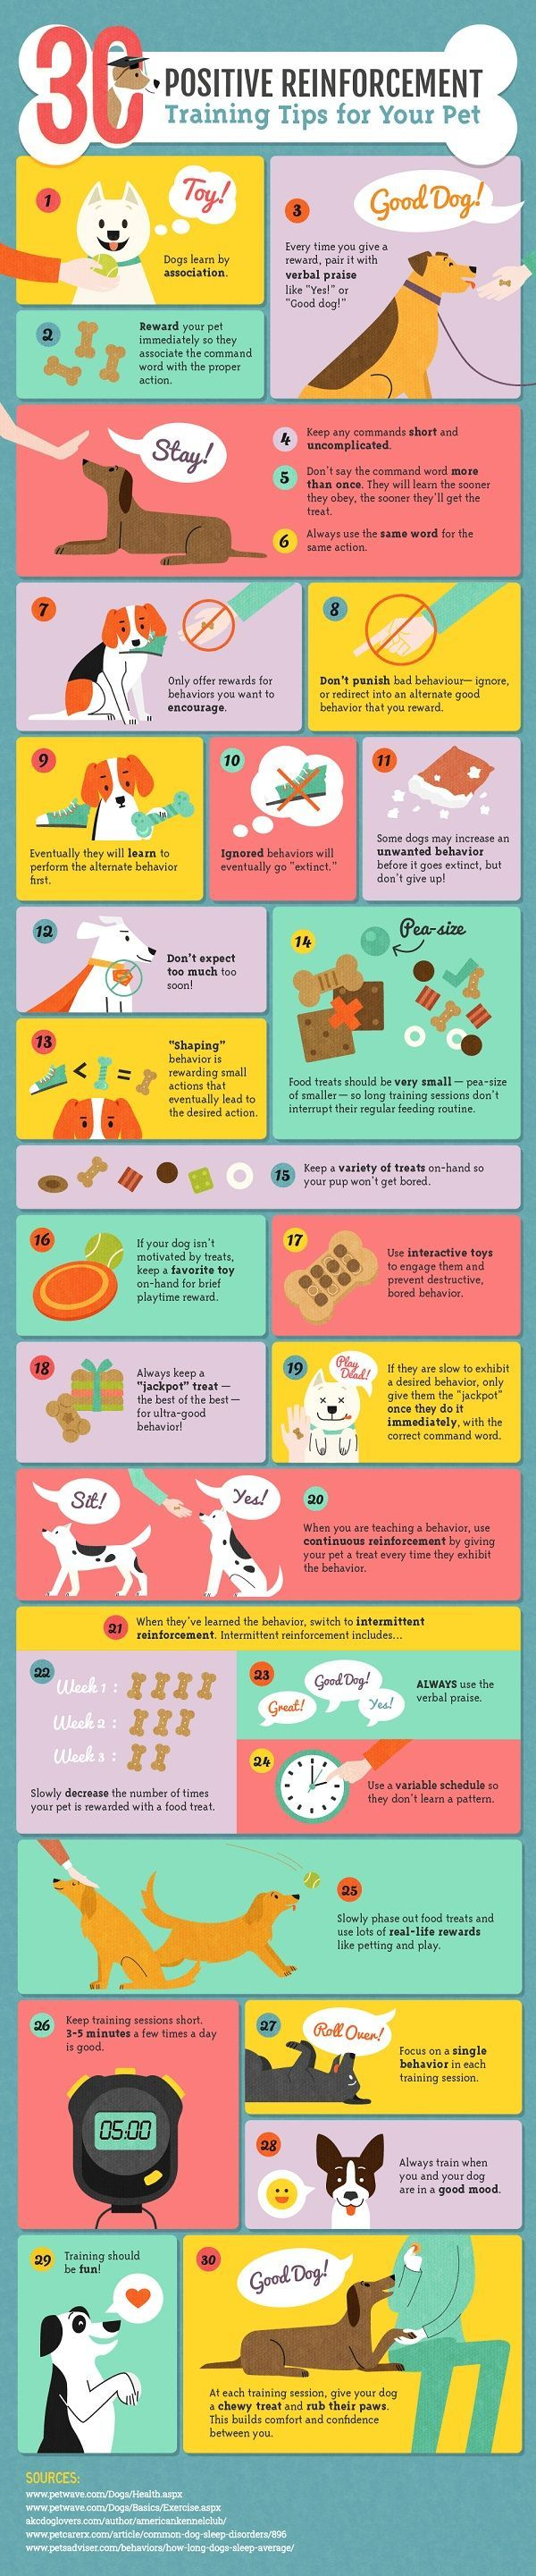 Positive Reinforcement Training for Dogs-Infographic by Amber Kingsley: